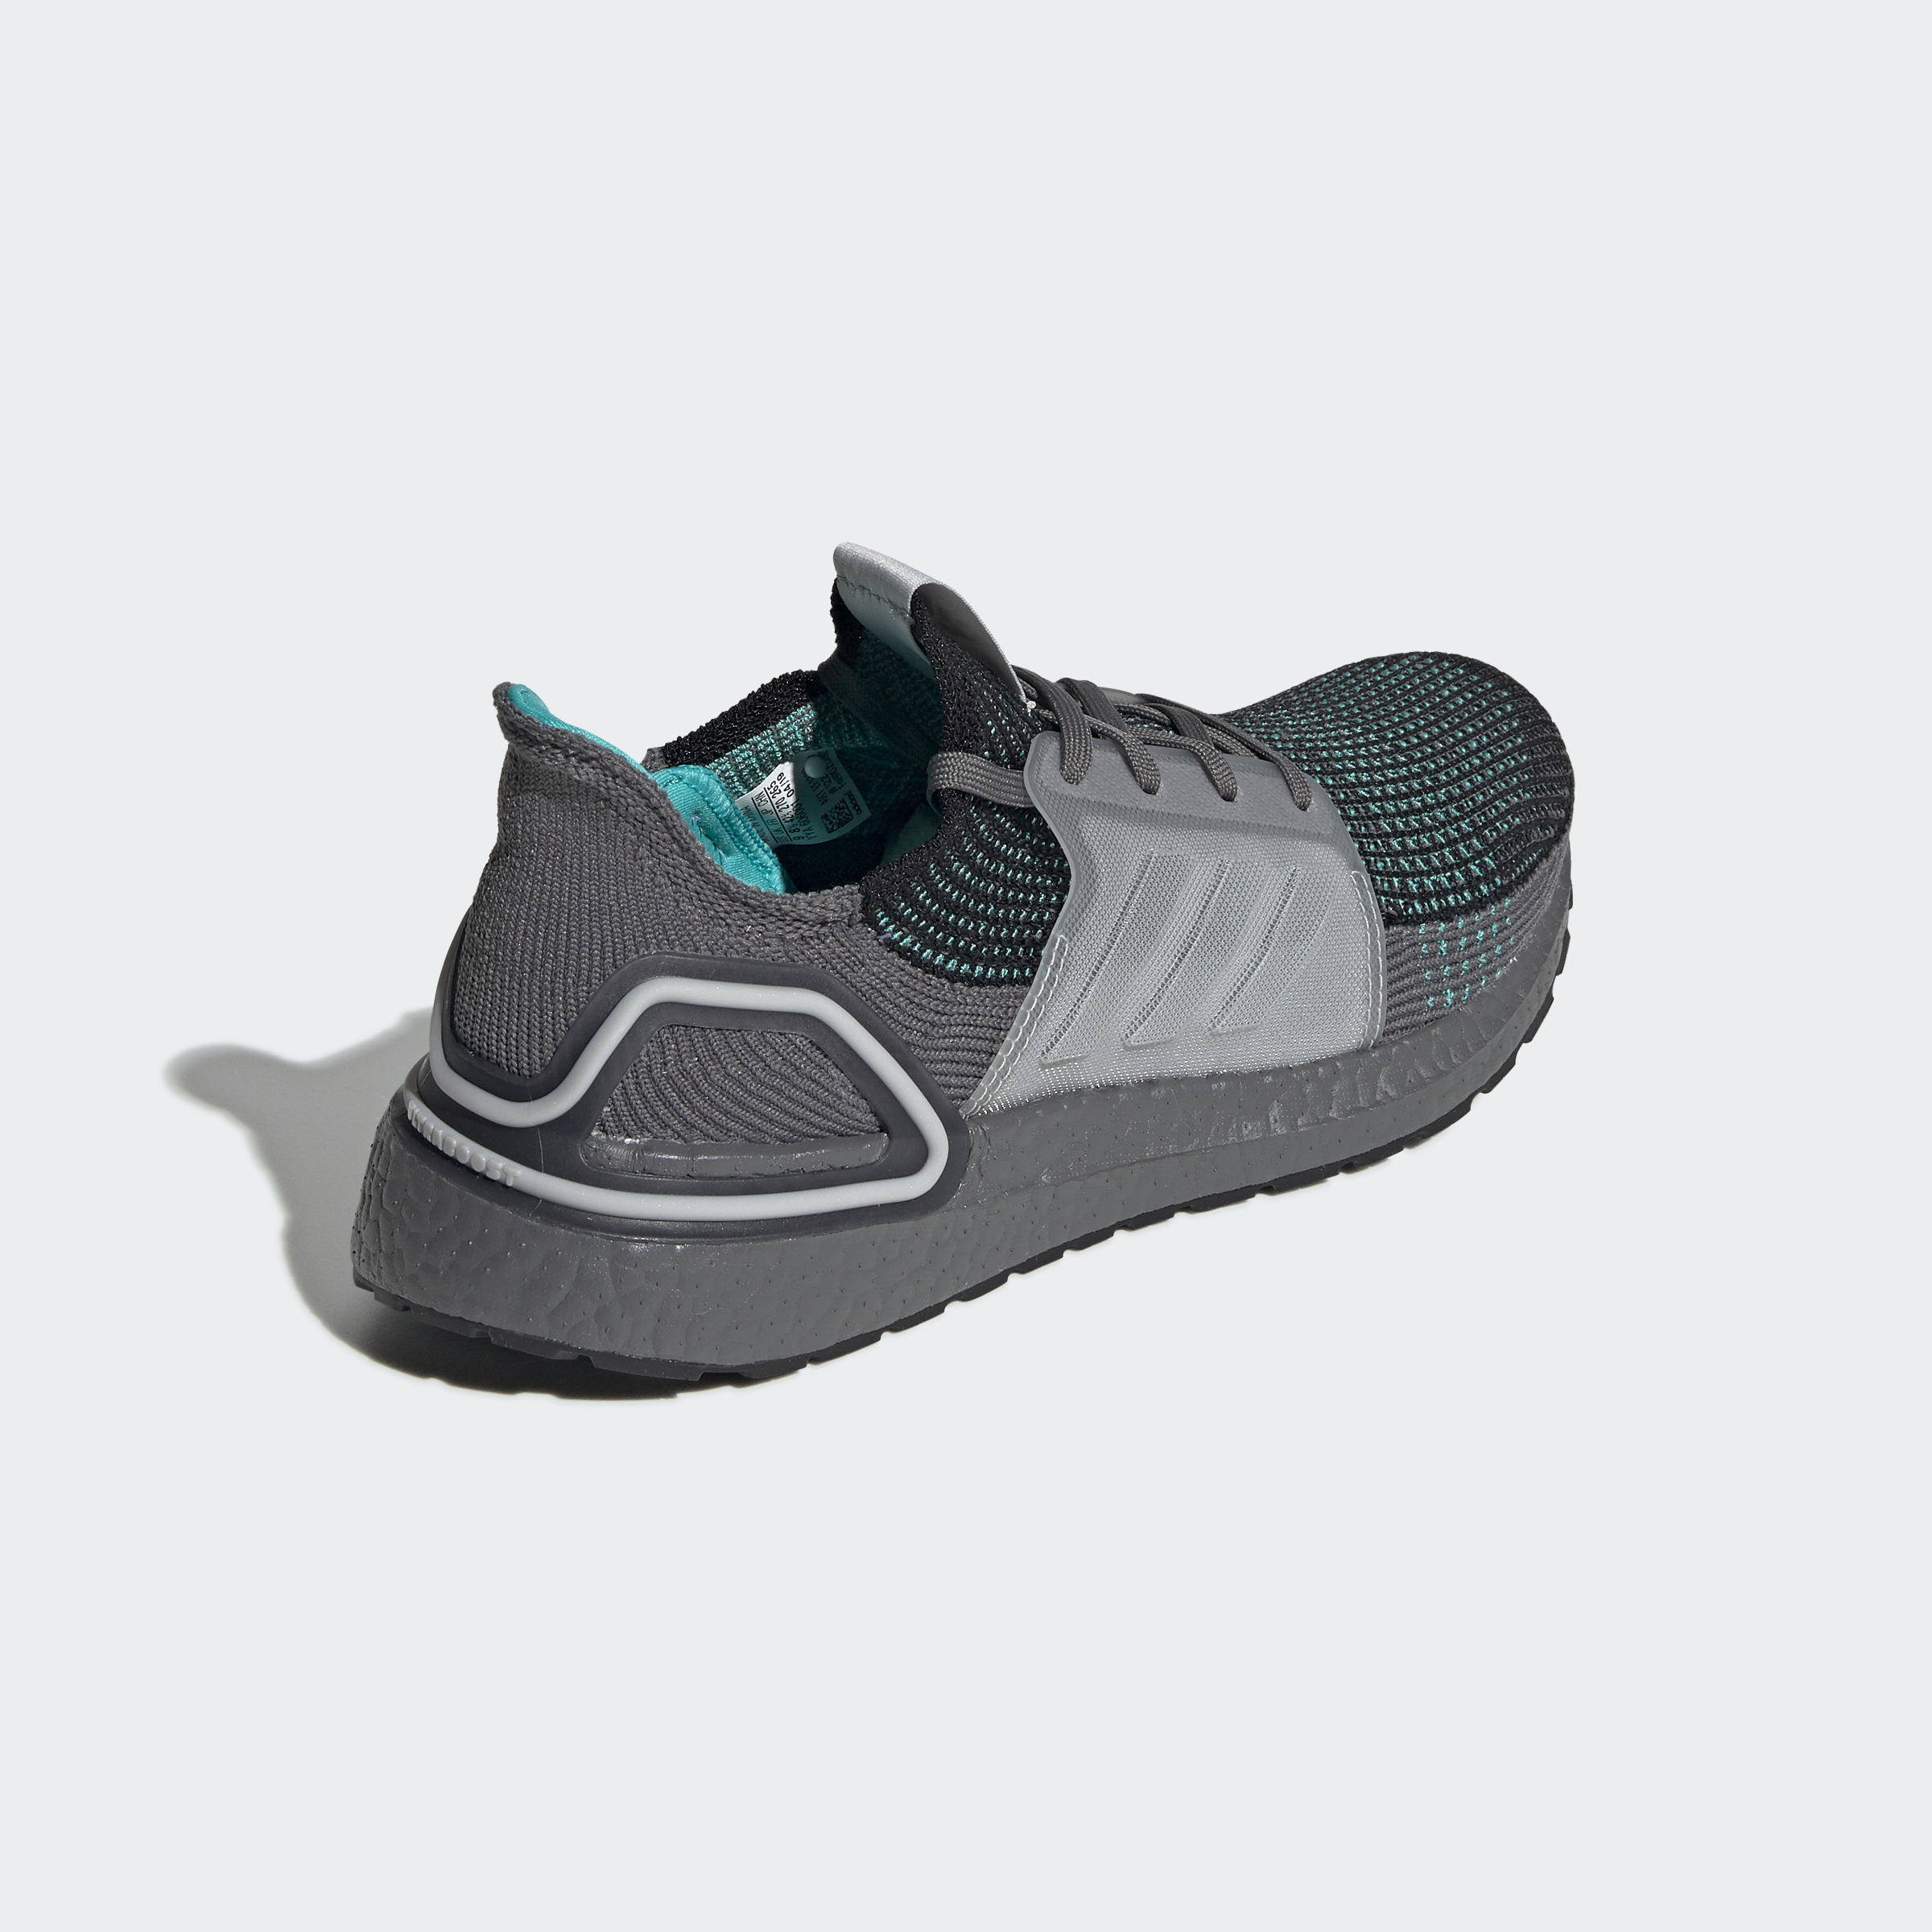 adidas-Ultraboost-19-Shoes-Athletic-amp-Sneakers thumbnail 17